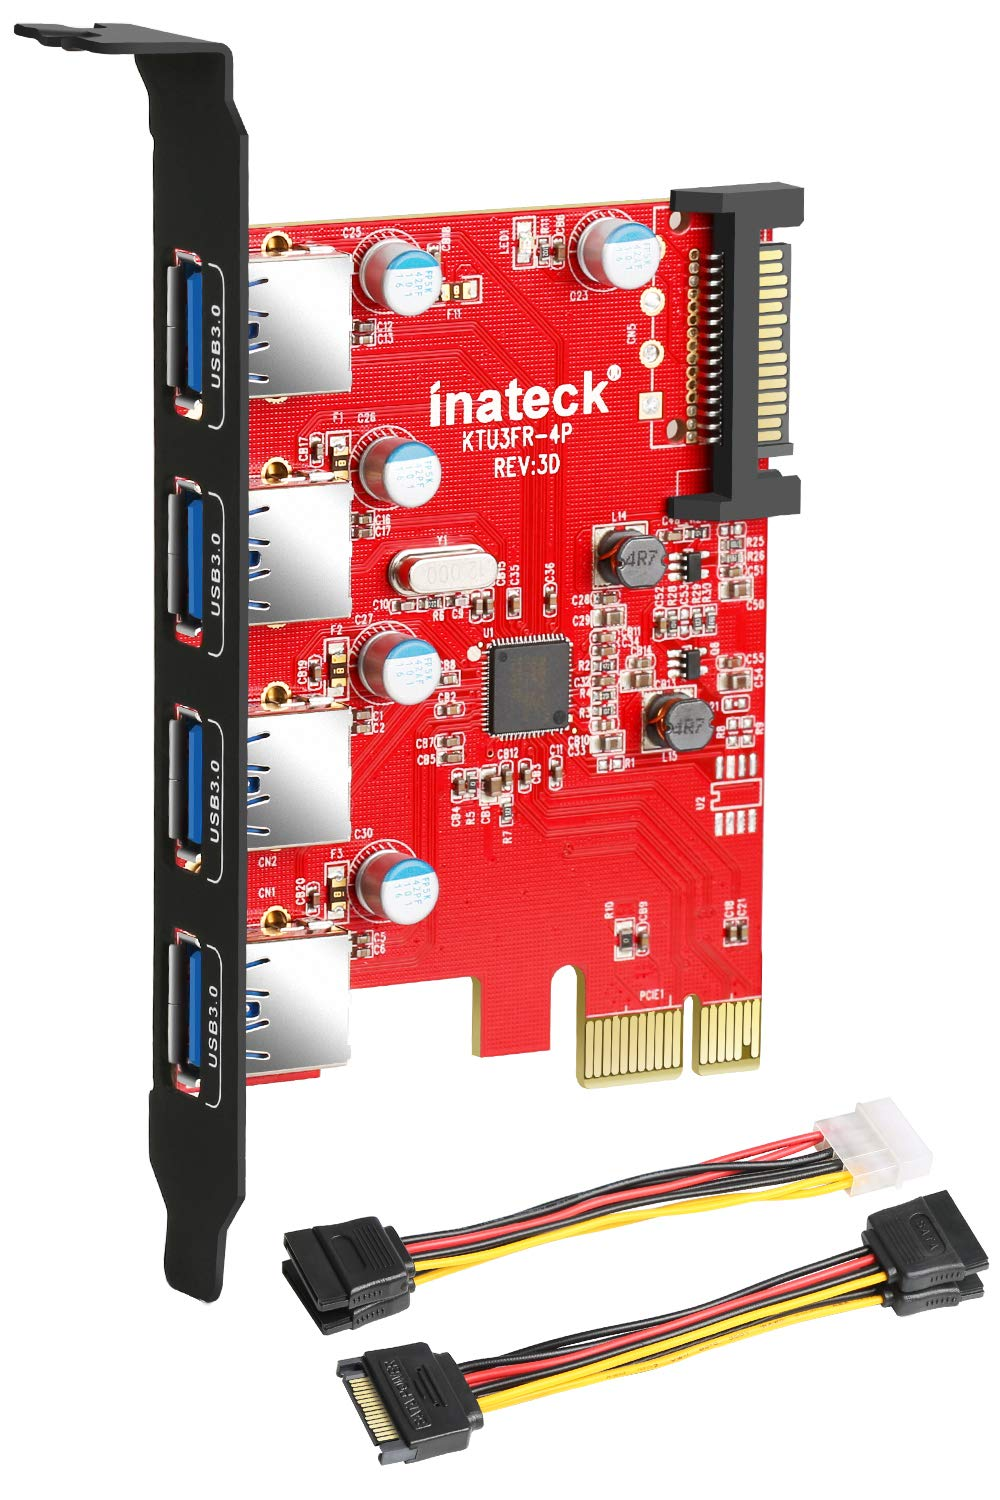 Inateck Superspeed 4 Ports PCI-E to USB 3.0 Expansion Card - Interface USB 3.0 4-Port Express Card Desktop with 15 Pin SATA Power Connector, [ Include with A 4pin to 2x15pin Cable + A 15pin to 2x 15pin SATA Y-Cable ] (KT4001) by Inateck